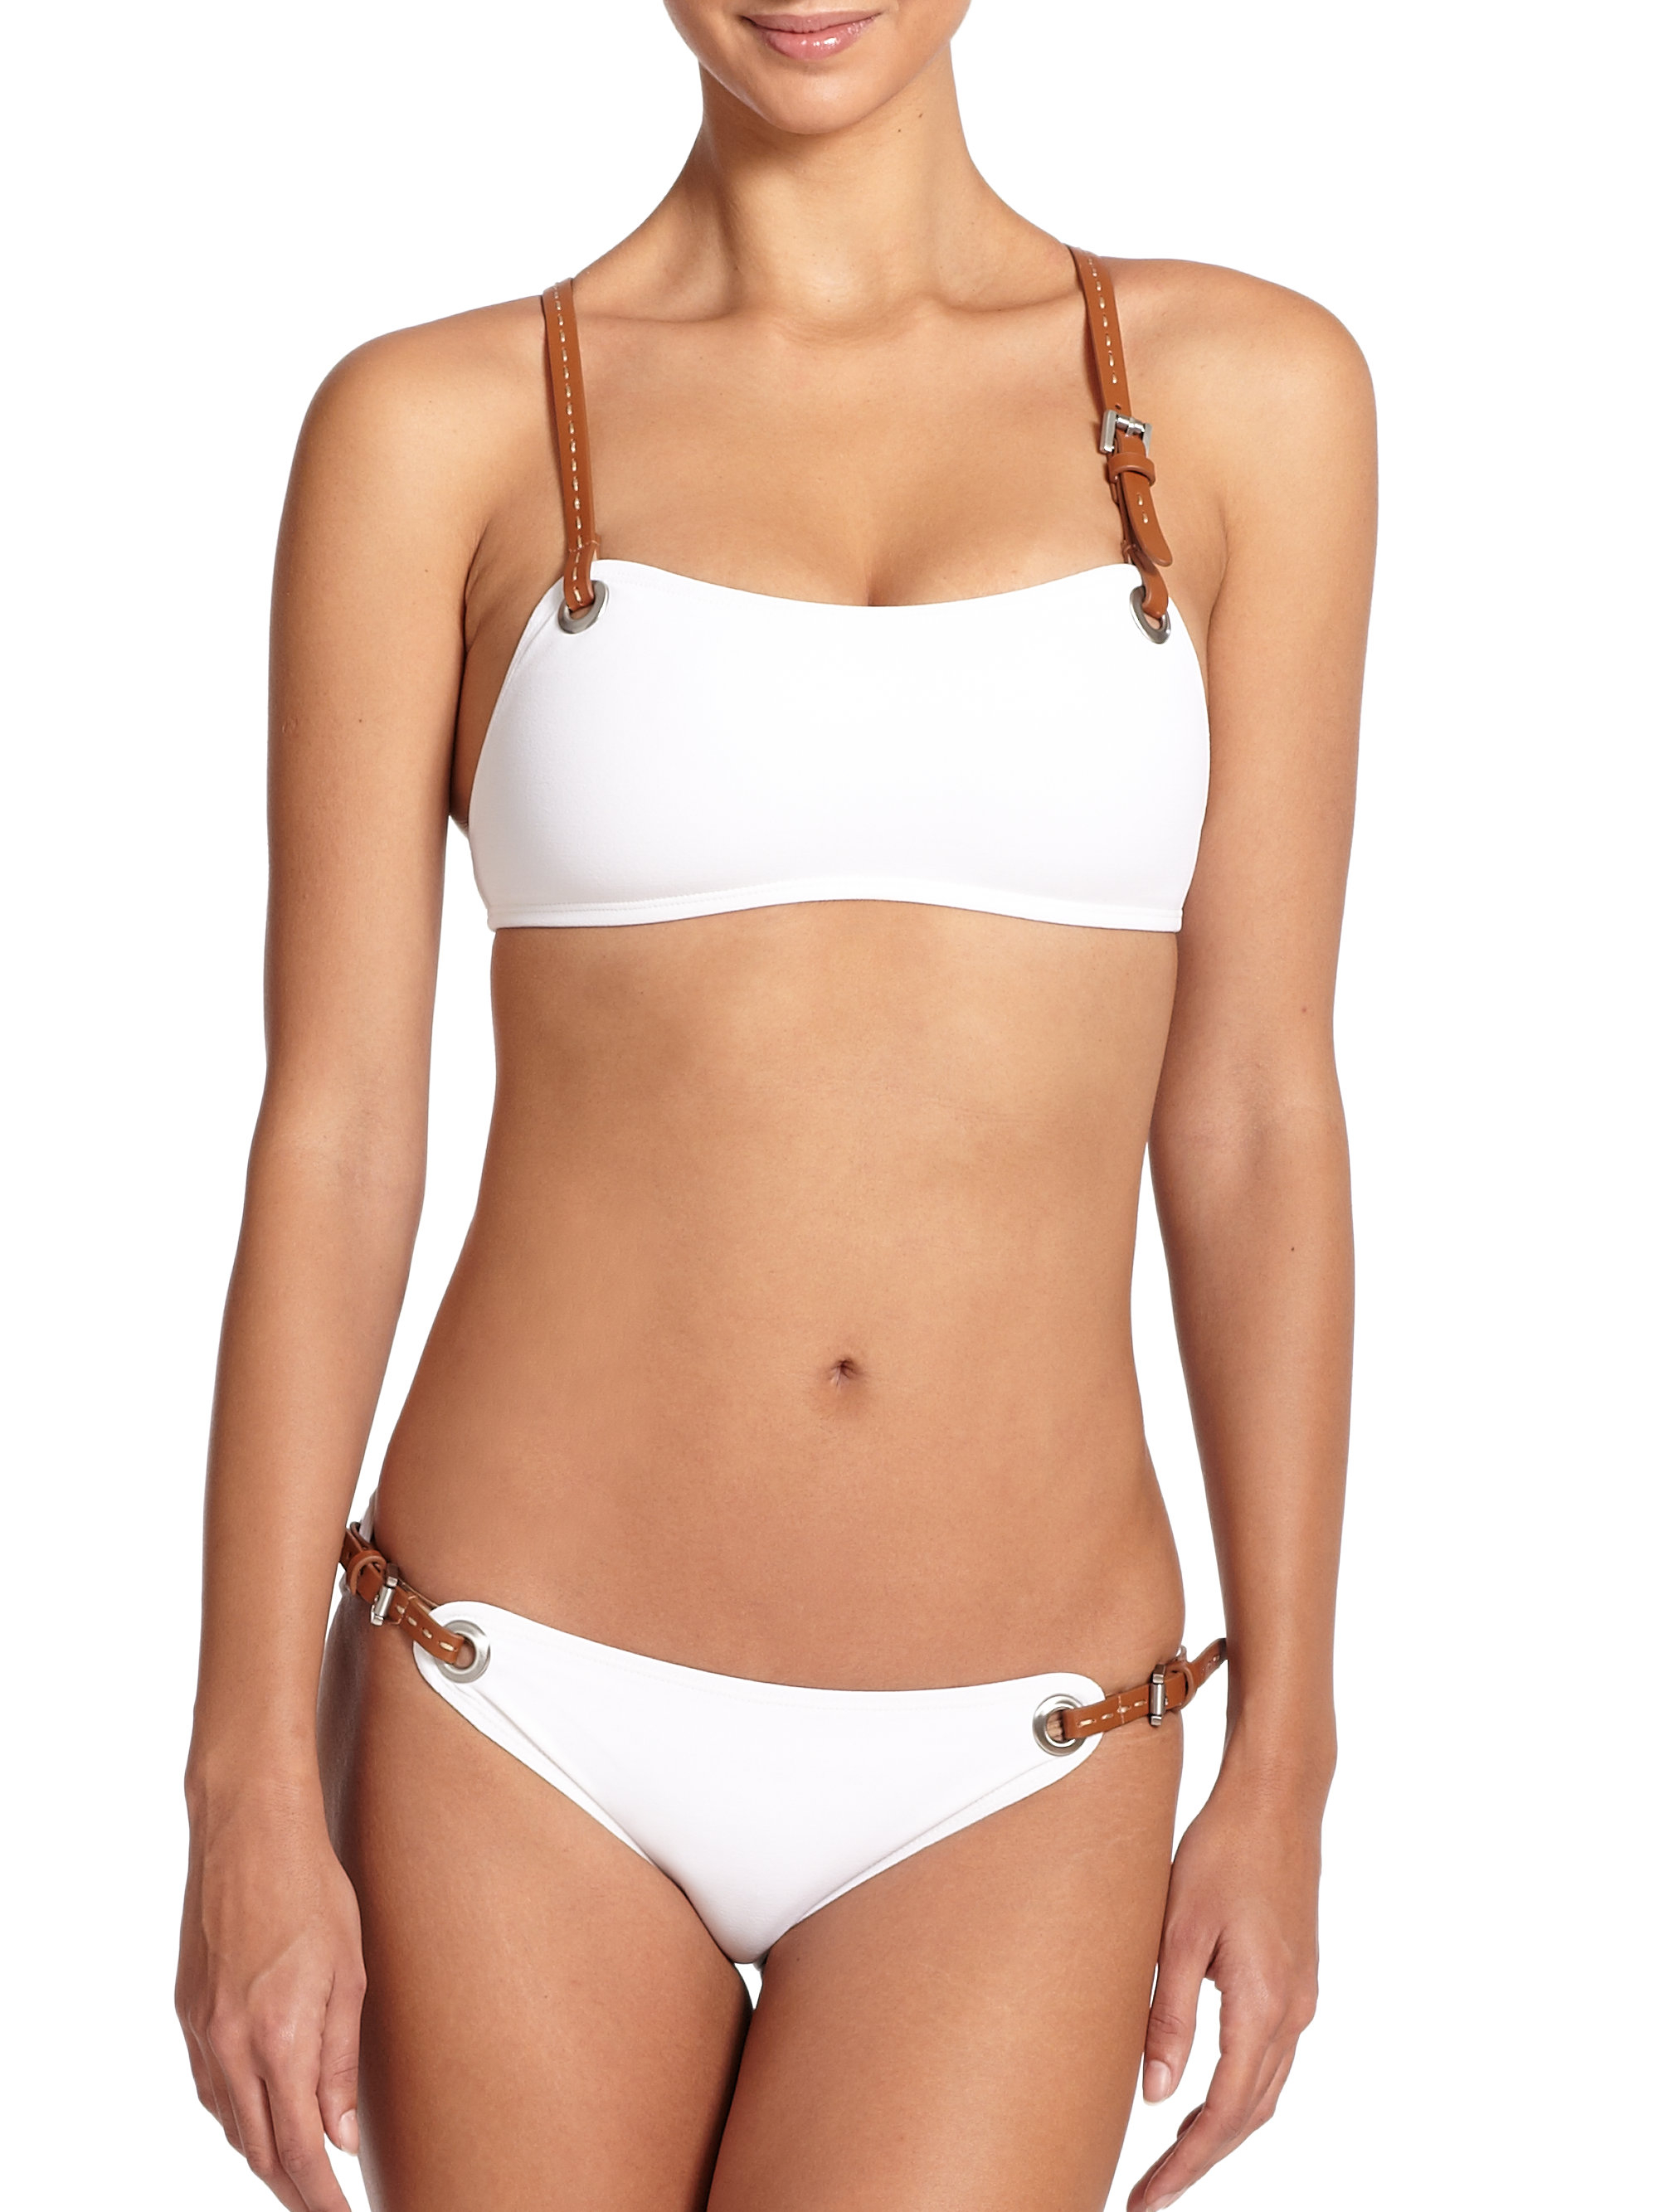 michael kors two piece belted bikini in white lyst. Black Bedroom Furniture Sets. Home Design Ideas